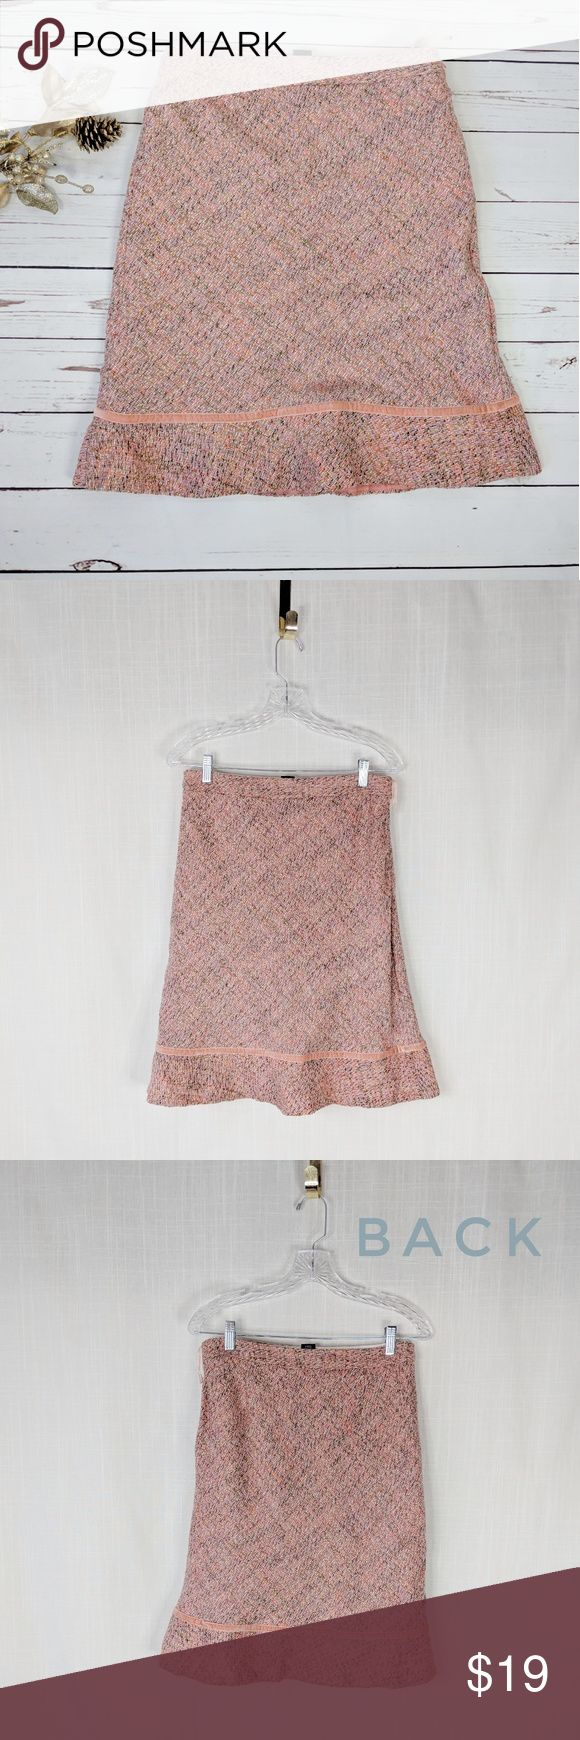 GAP • pink wool blend tweed straight skirt Gap tweed knee length straight skirt, pink wool blend, women size 6. Velvet trim along hem line, side zip closure, fully lined. Excellent condition, no obvious signs of wear.   MEASUREMENTS: Flat waist: 15.5 in Flat hips: 20 in Length 24 in GAP Skirts Pencil